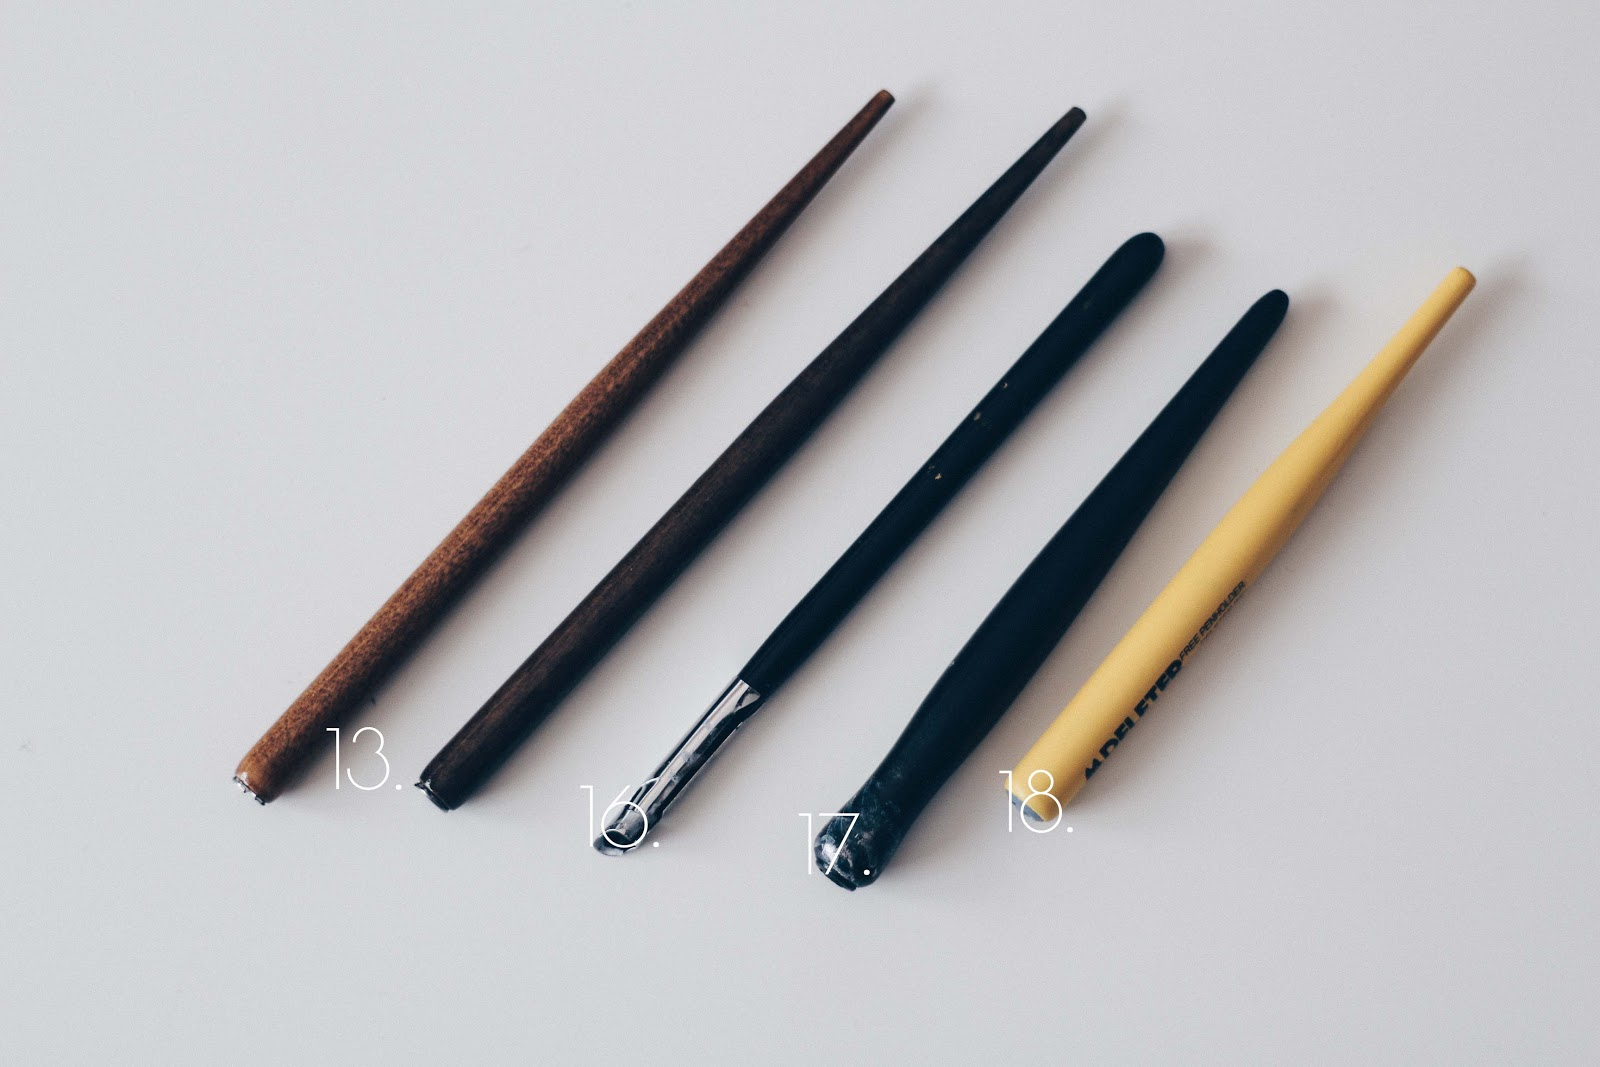 brown and black studs/penholders